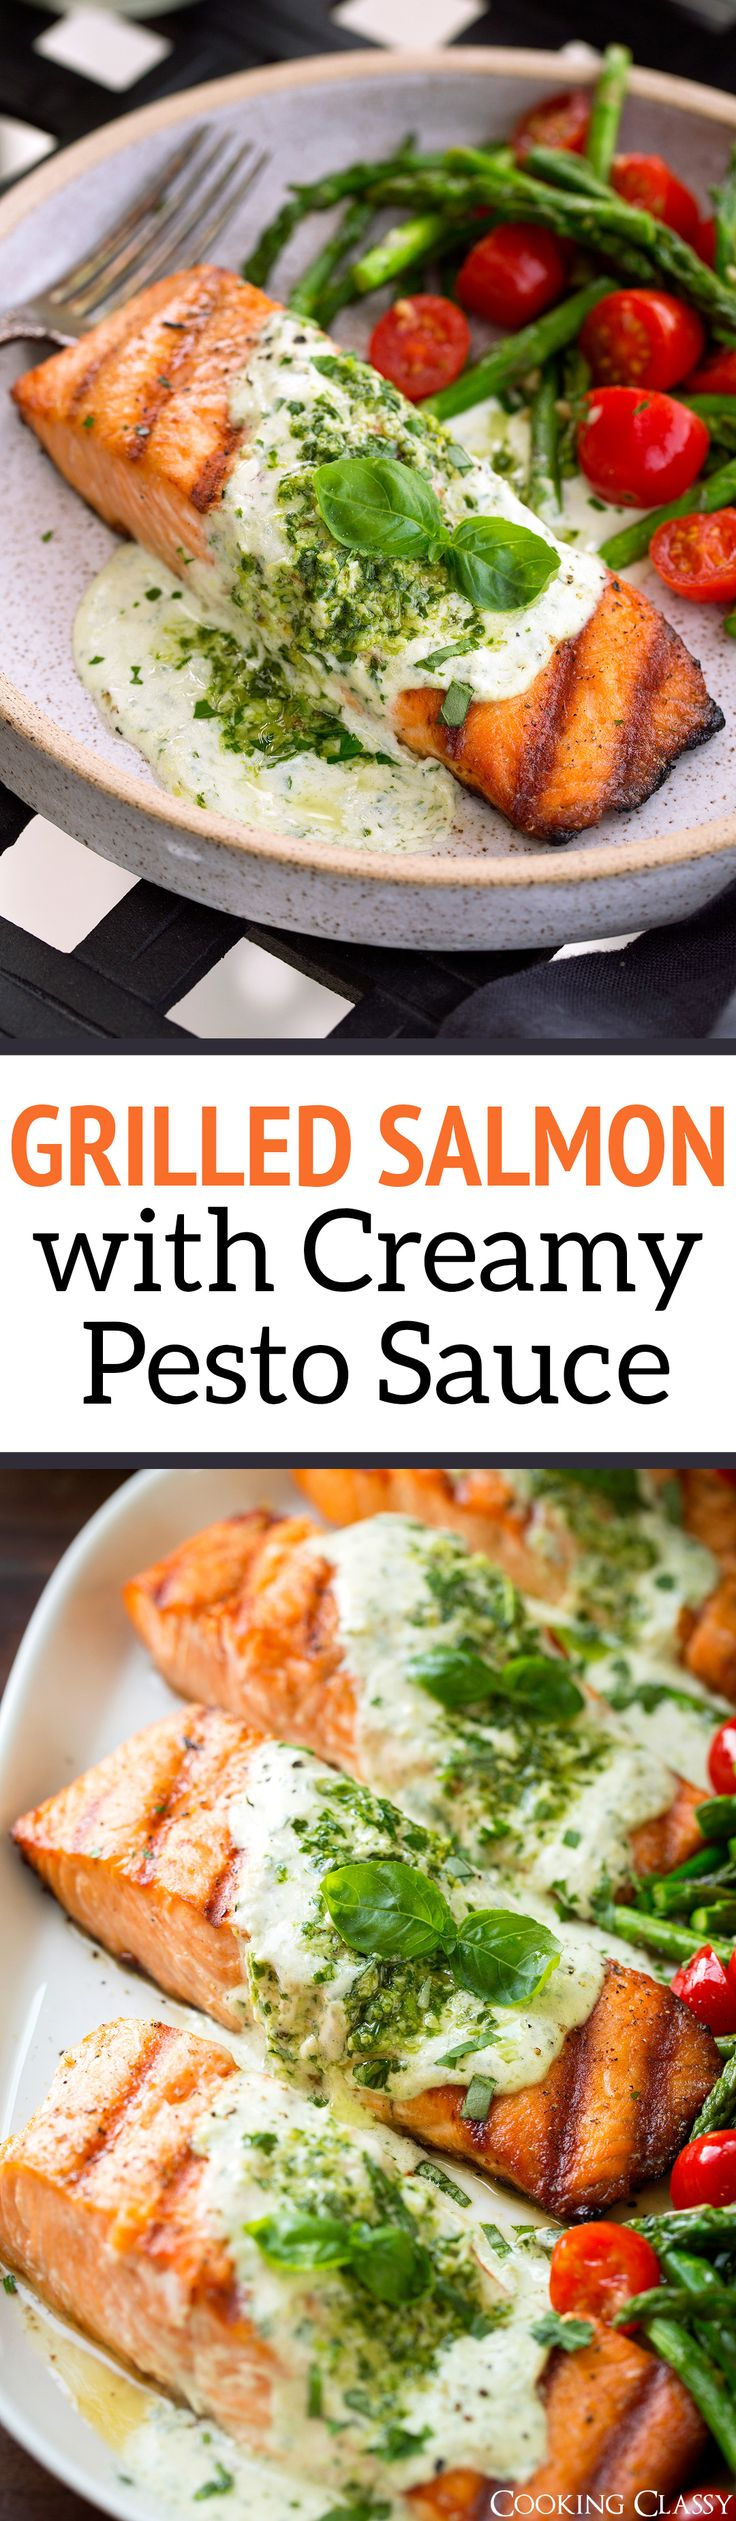 Grilled Salmon with Creamy Pesto Sauce - Cooking Classy